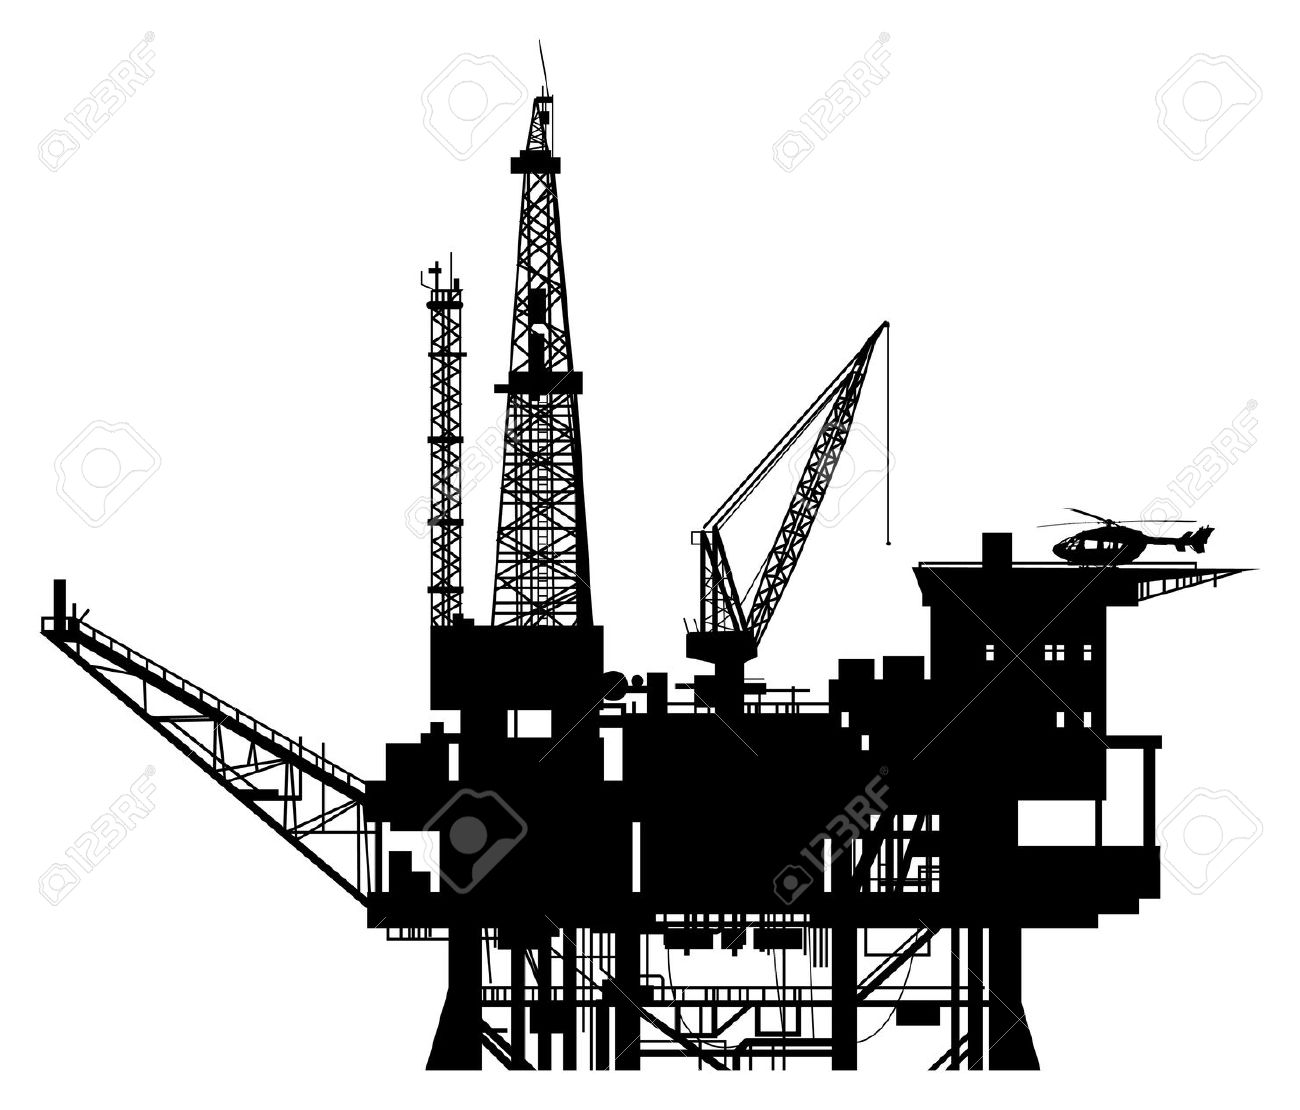 Free Oil Rig Clipart. oil rig: Oil drilling rig .